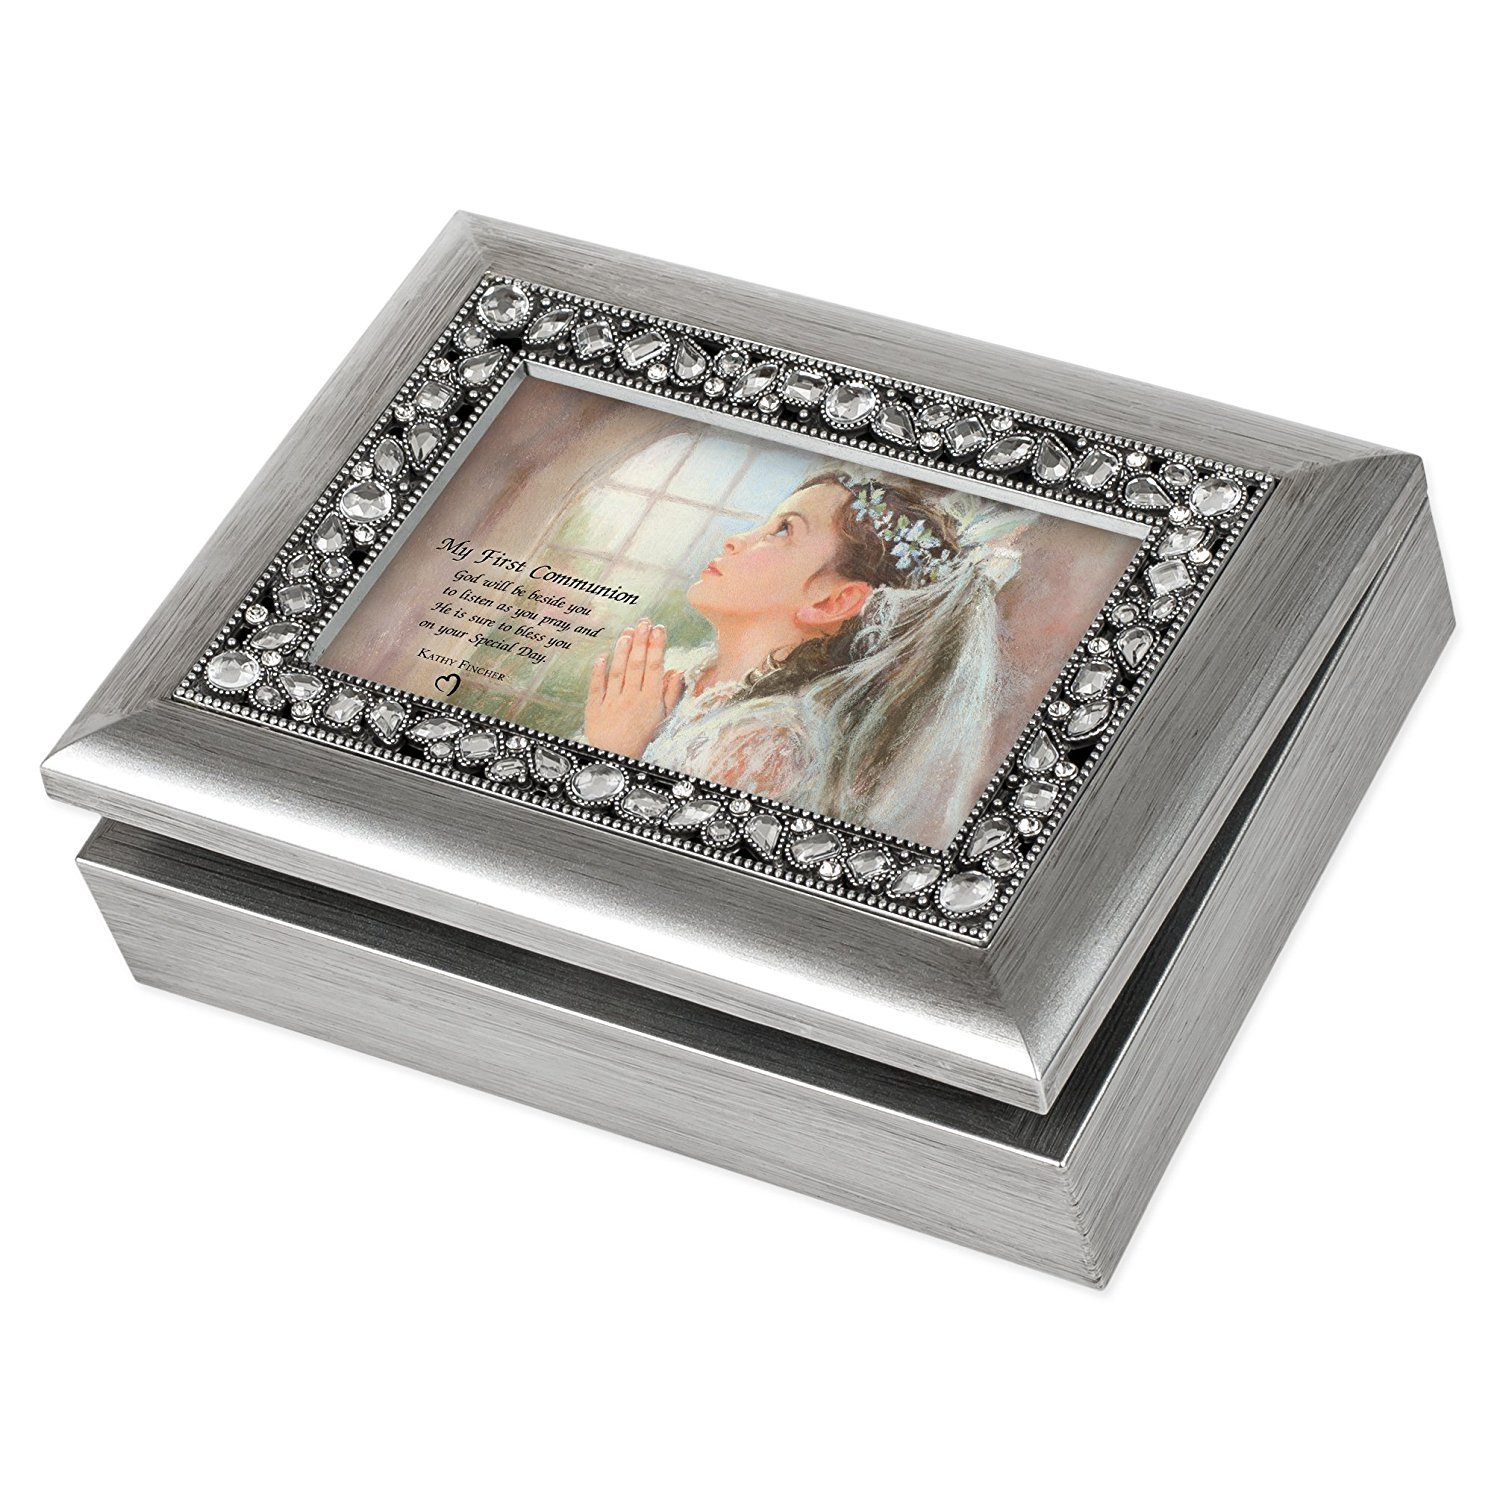 My First Communion Girl Brushed Silver Jeweled Inlay Jewelry Music Box Plays You Light Up My Life Cottage Garden 6166429